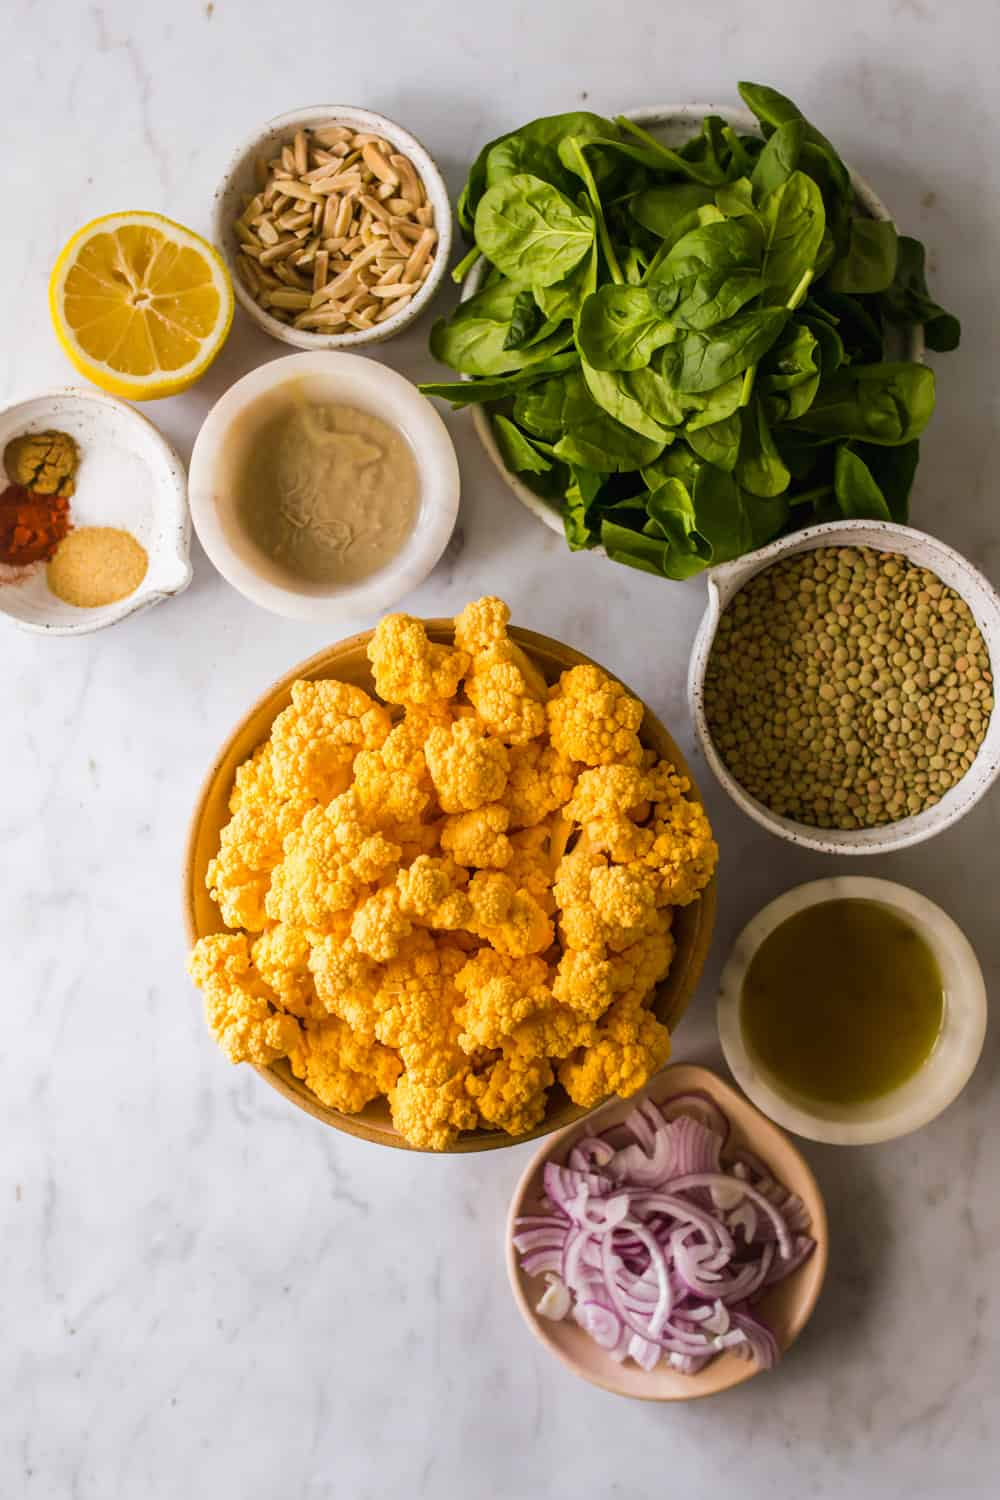 bowls of cauliflower, lentils, onions, greens, and salad dressing ingredients